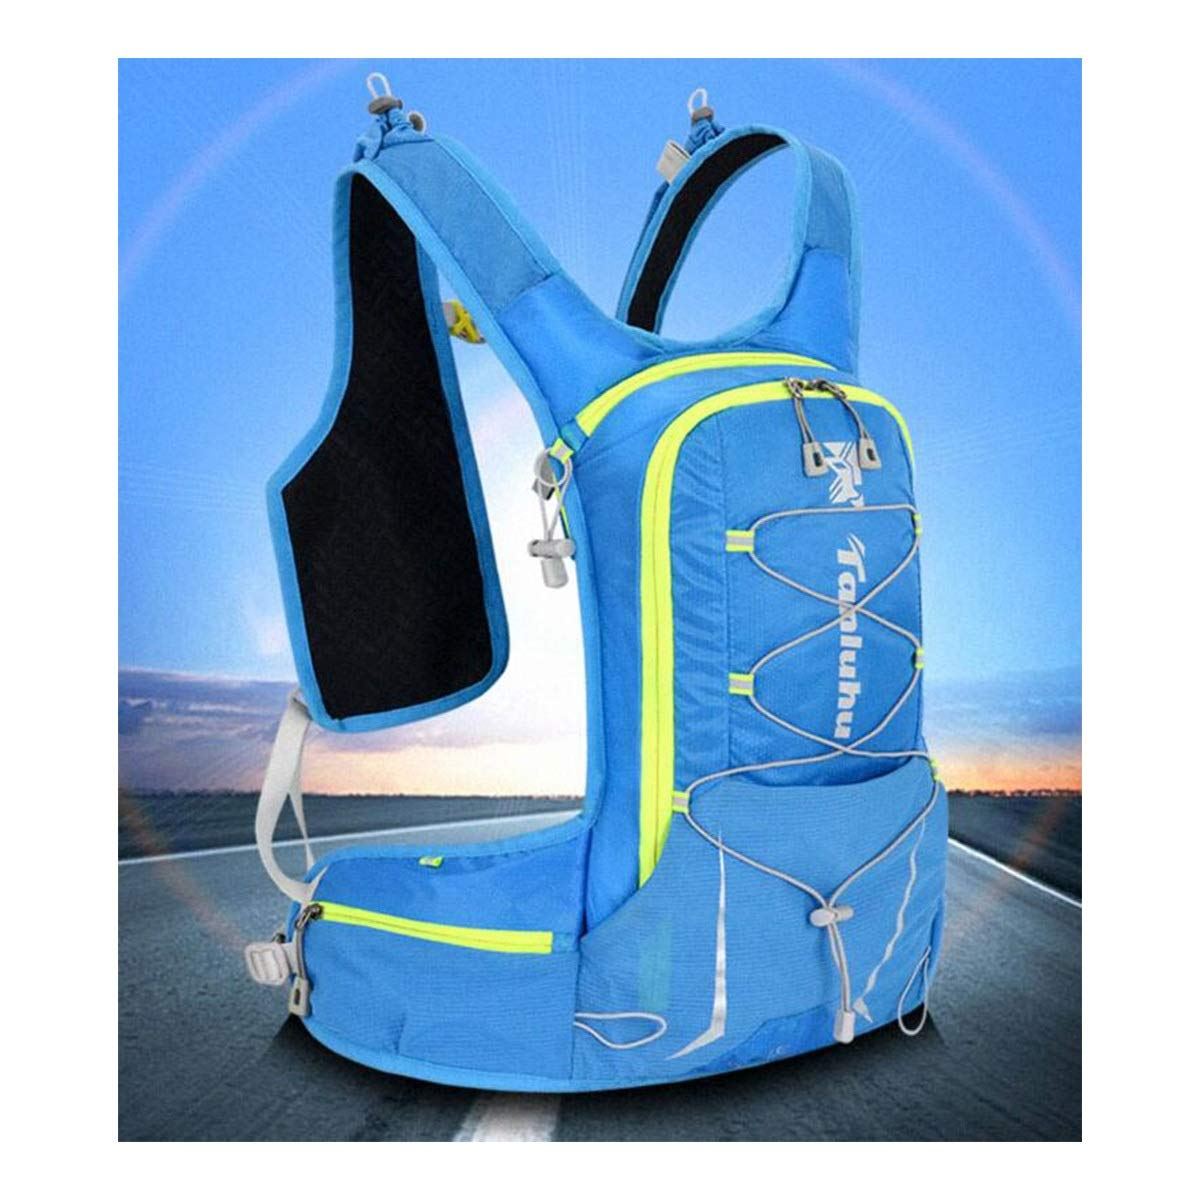 Qingduqijian Vest Backpack Lightweight Small Capacity Hiking Backpack Running Backpack Color : Blue Male and Female Marathon Cycling Backpack